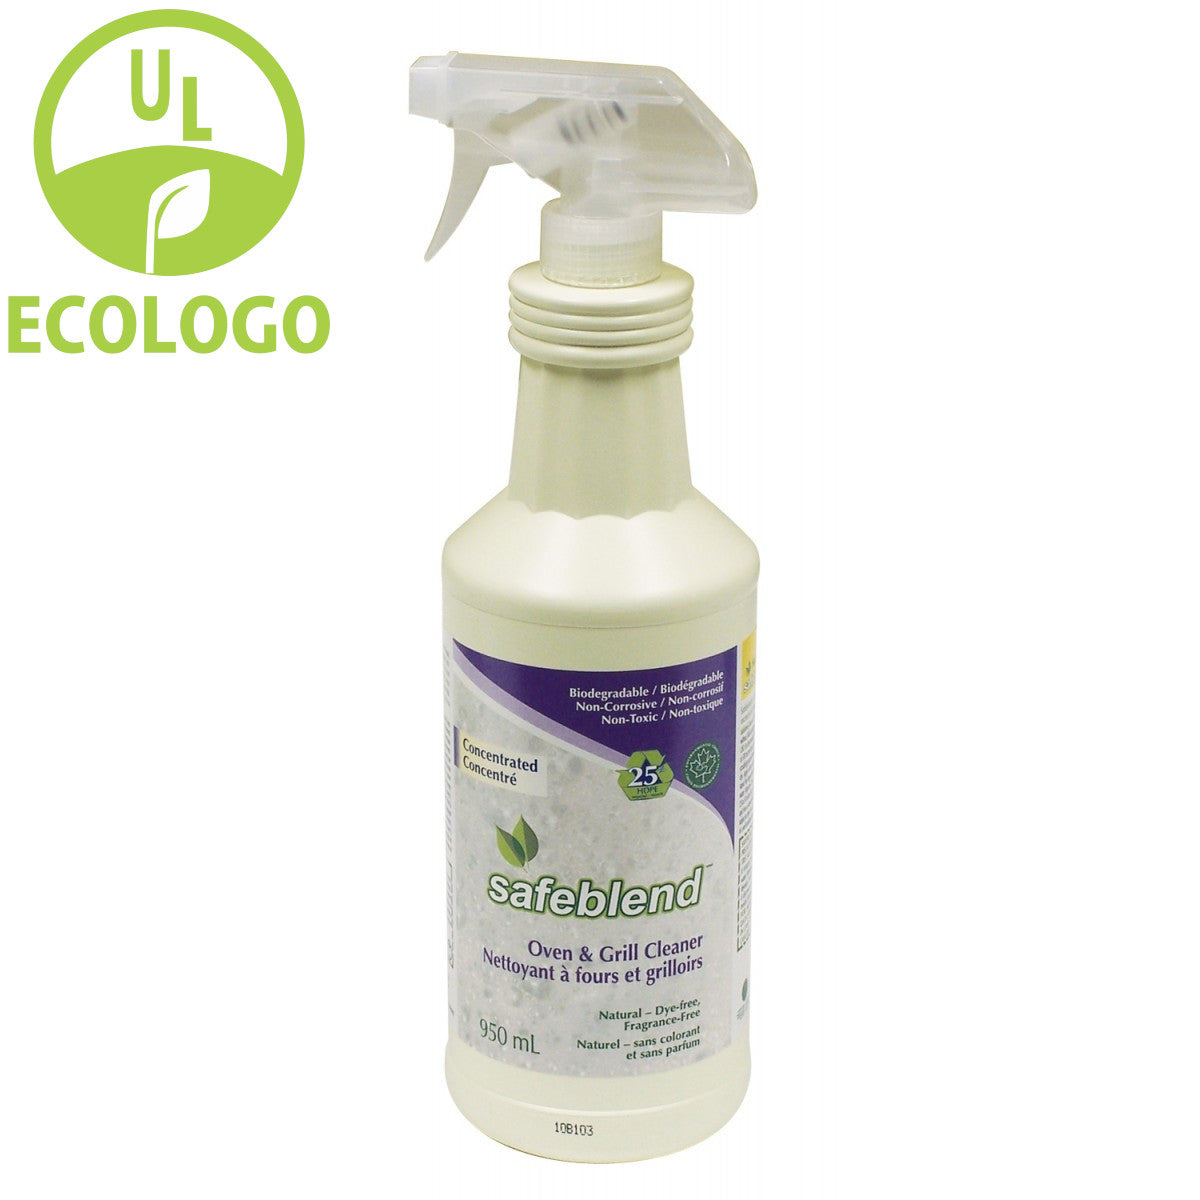 Safeblend EcoLogo Concentrated Oven and Grill Cleaner - 950ml - Super Vacs